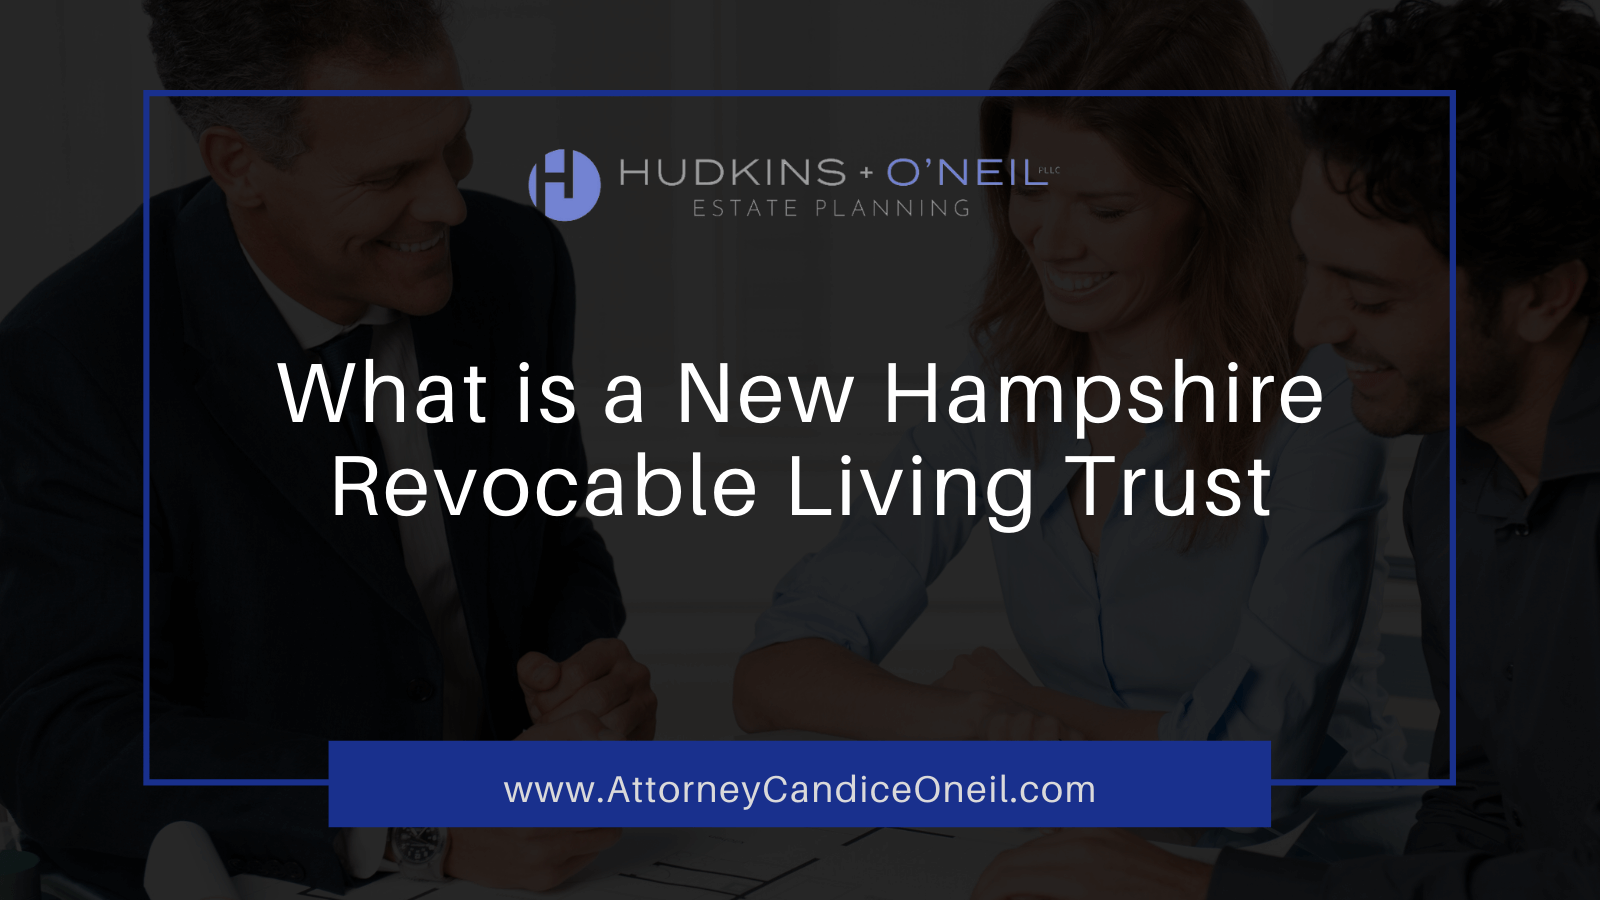 What is a New Hampshire Revocable Living Trust